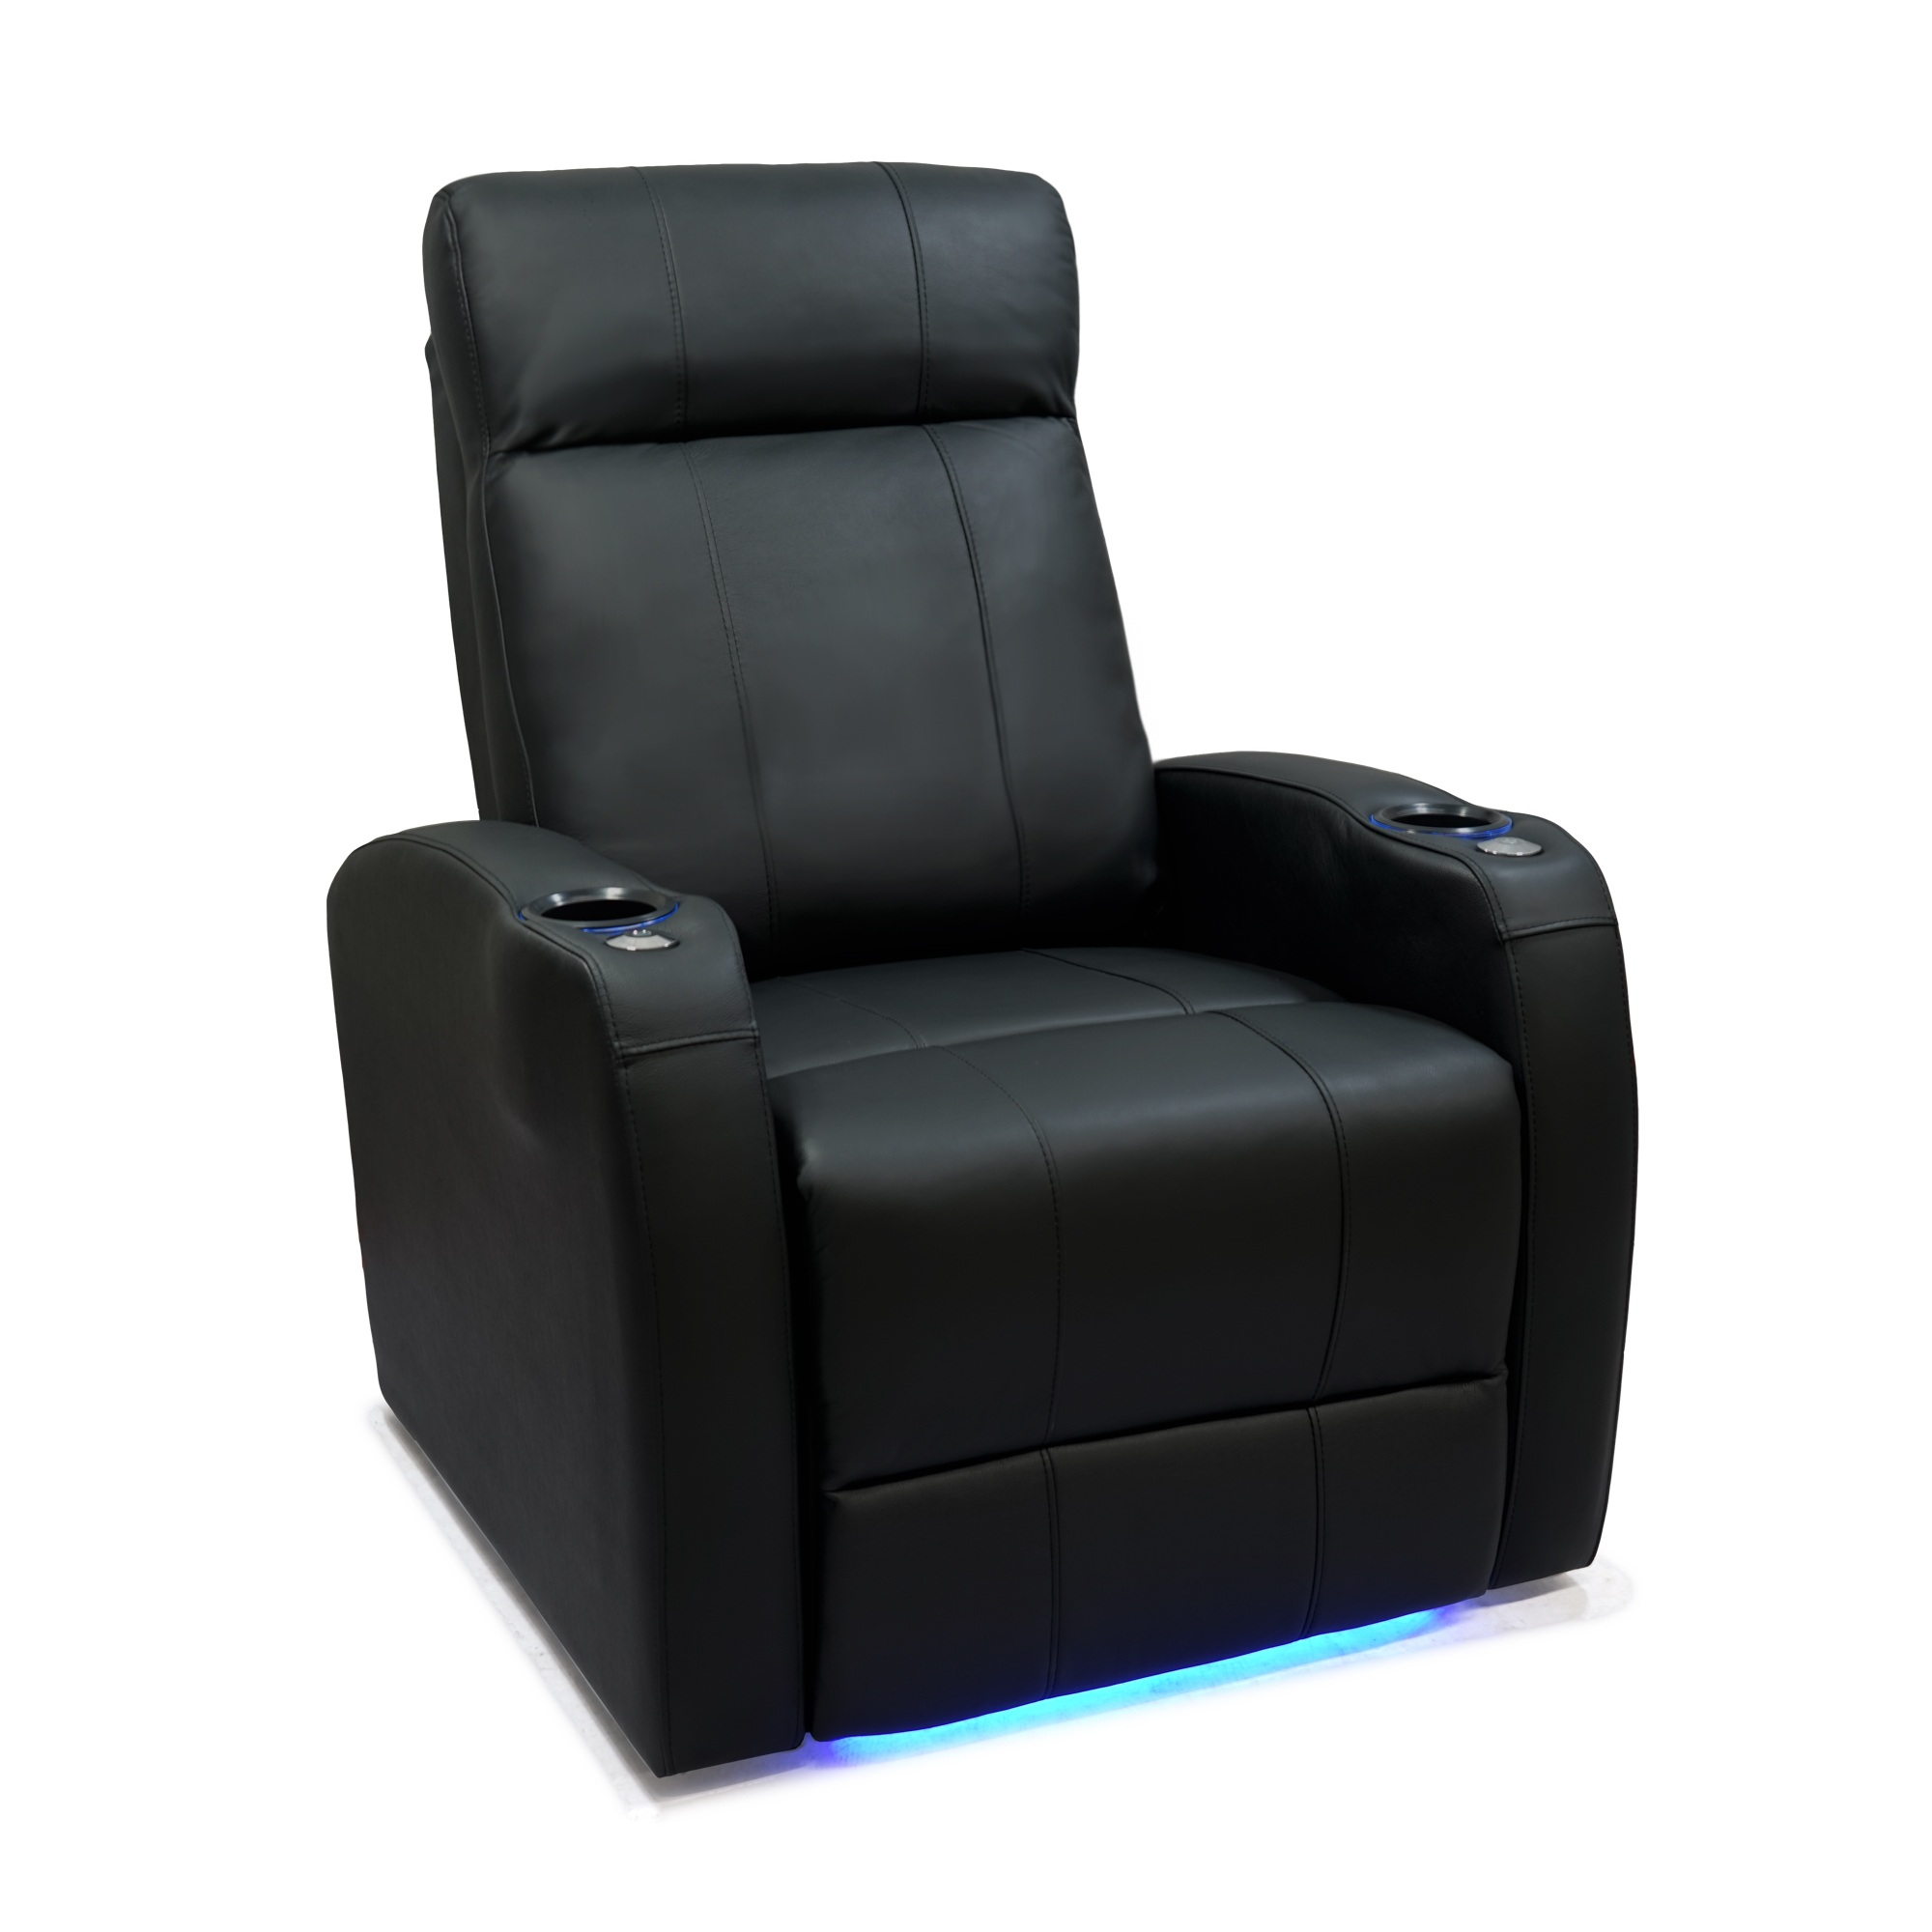 Valencia Syracuse Home Theater Seating - Eastporters on 2 seat theater seating, 3 seat theater seating, 4 seat theater seating,